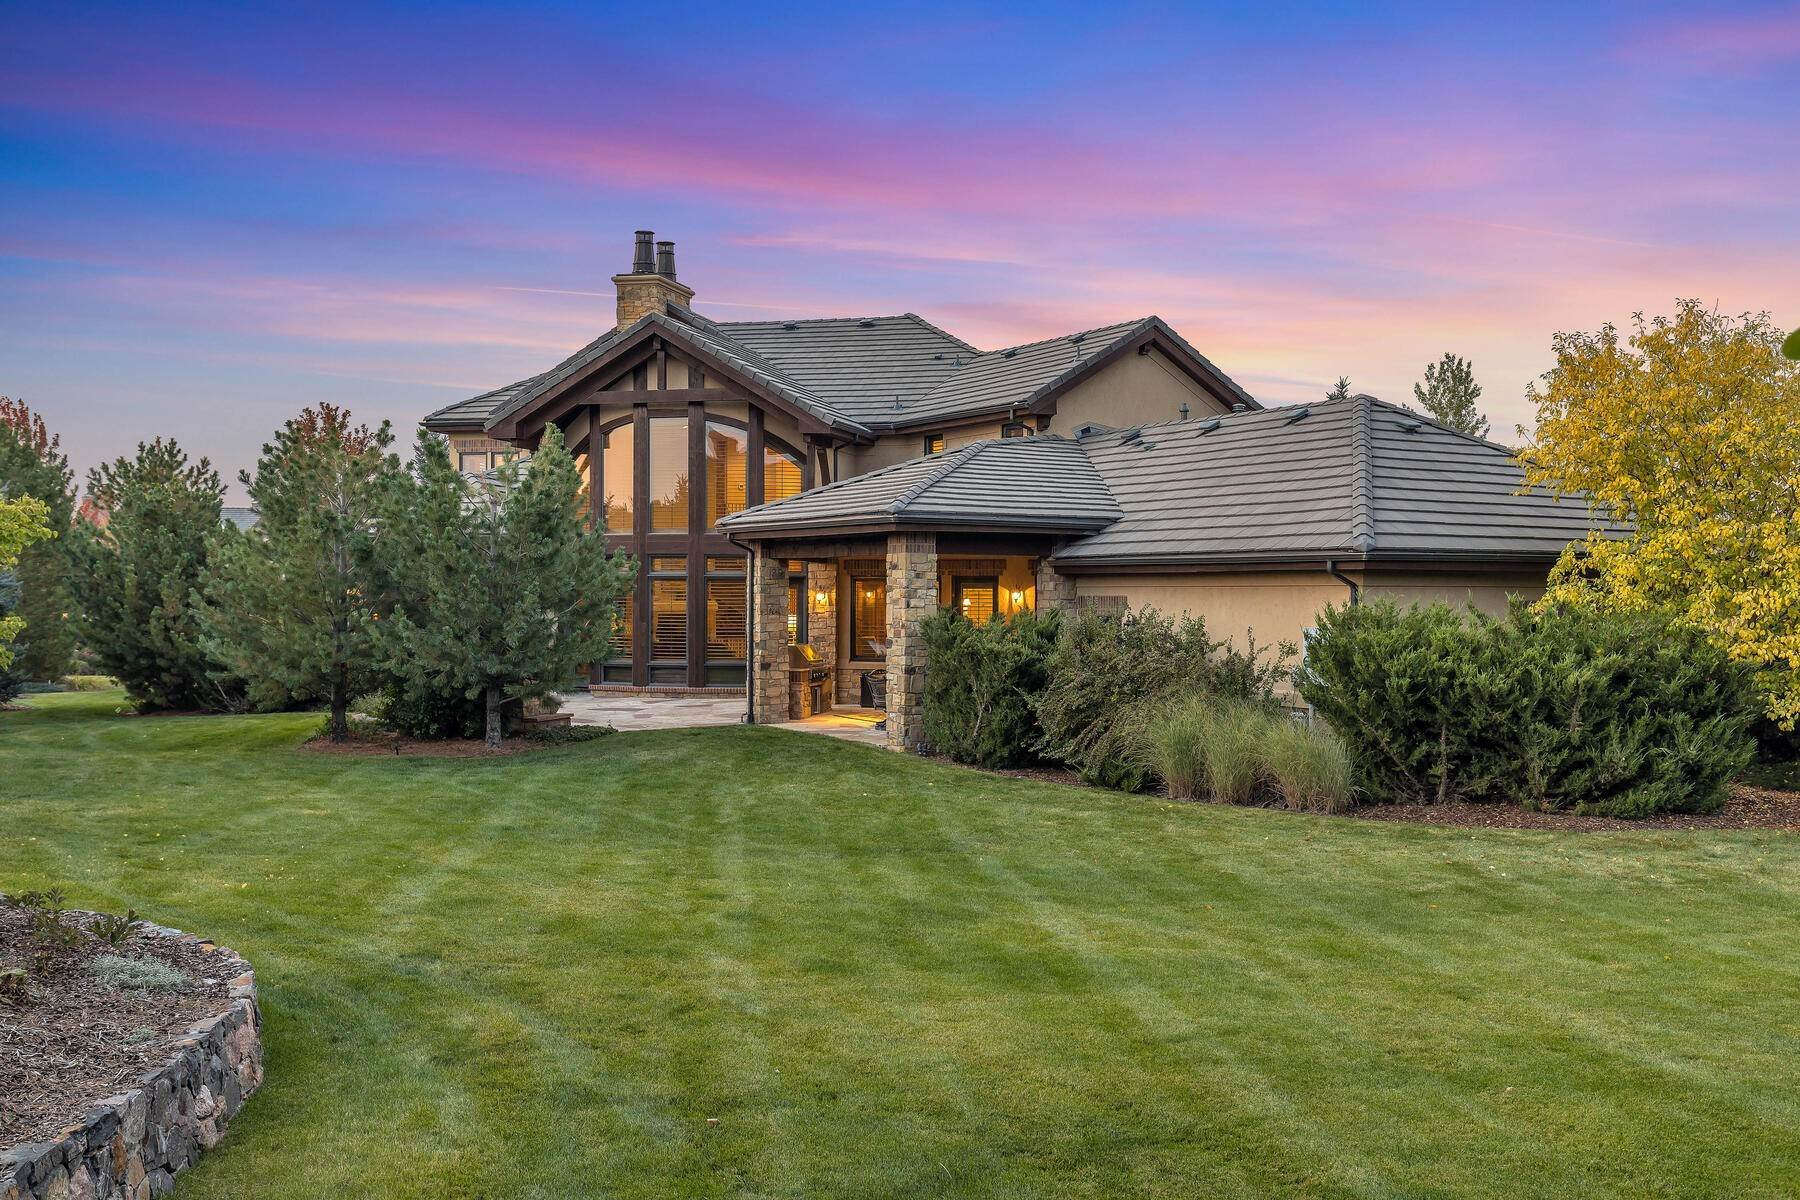 Single Family Homes for Sale at Custom Estate on a Park-like Setting 4100 Preserve Parkway N Greenwood Village, Colorado 80121 United States